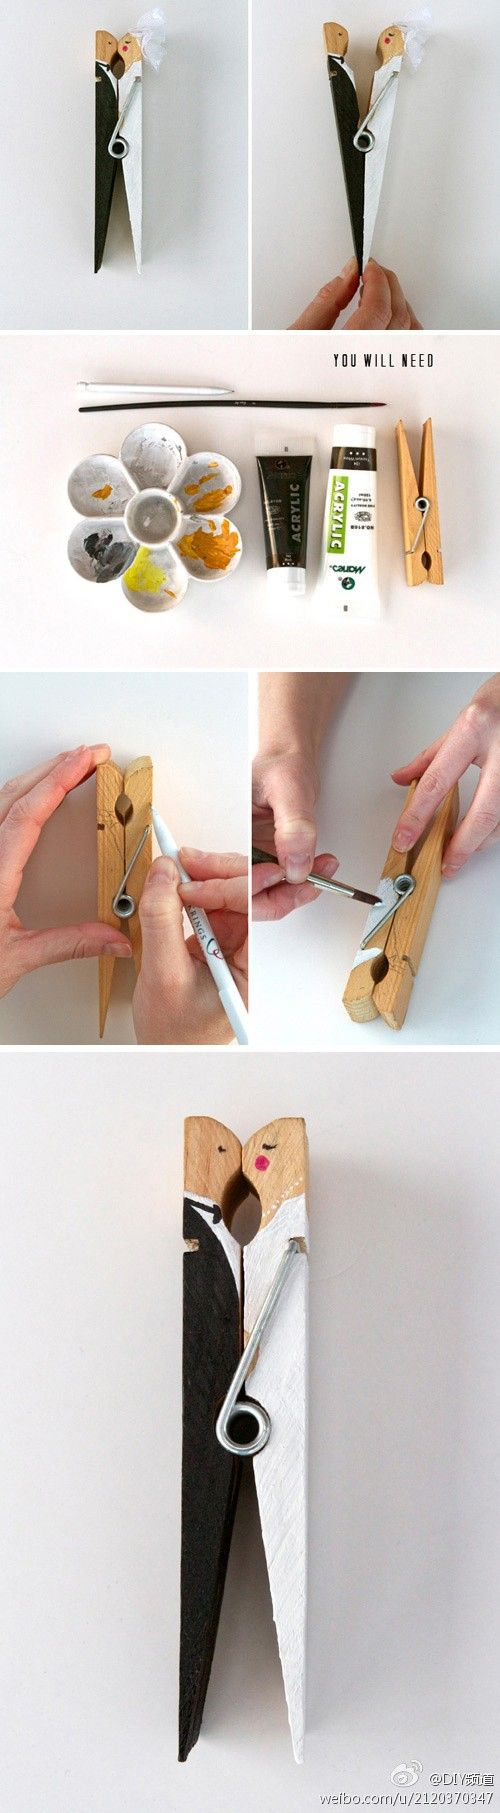 diy Wedding clothes pin. Such a cute idea for wedding favours in the big day!!